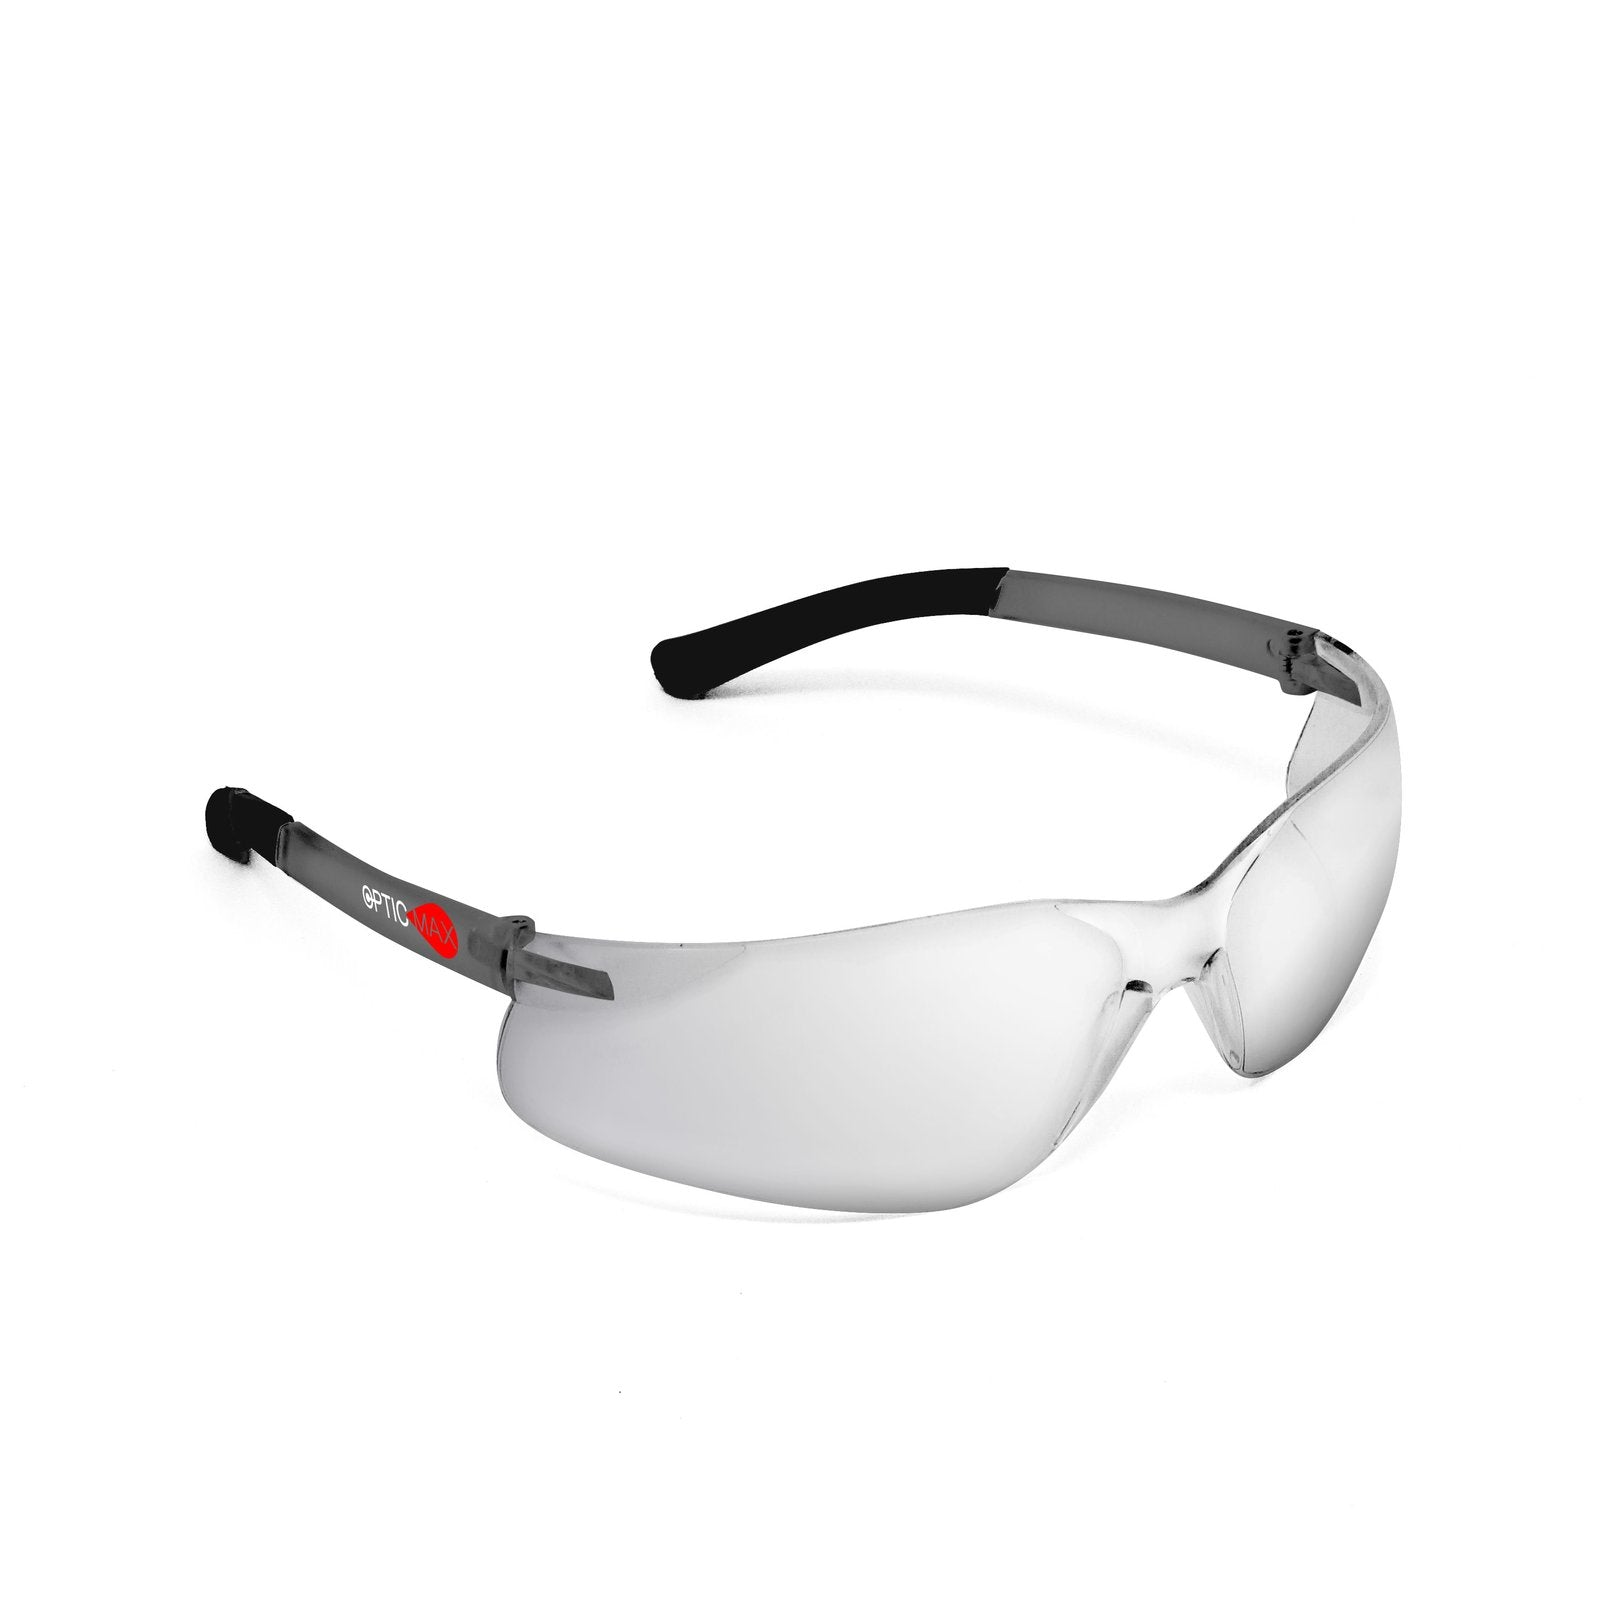 OPTIC MAX Silver Mirror Lens with Grey Frame Black Tips